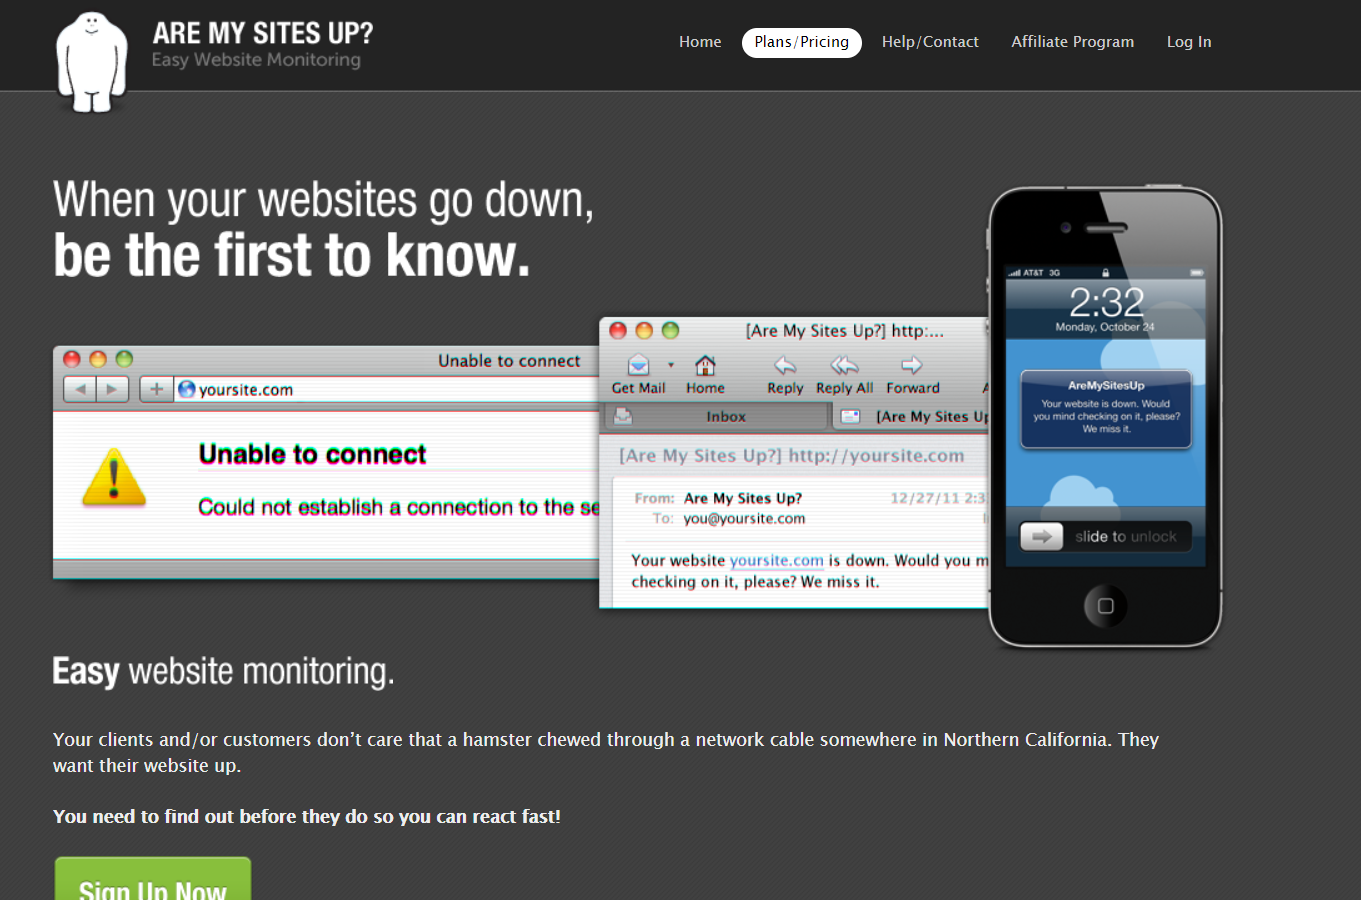 AreMySitesUP - Is Website Down? 10 Tools to Check Your Website